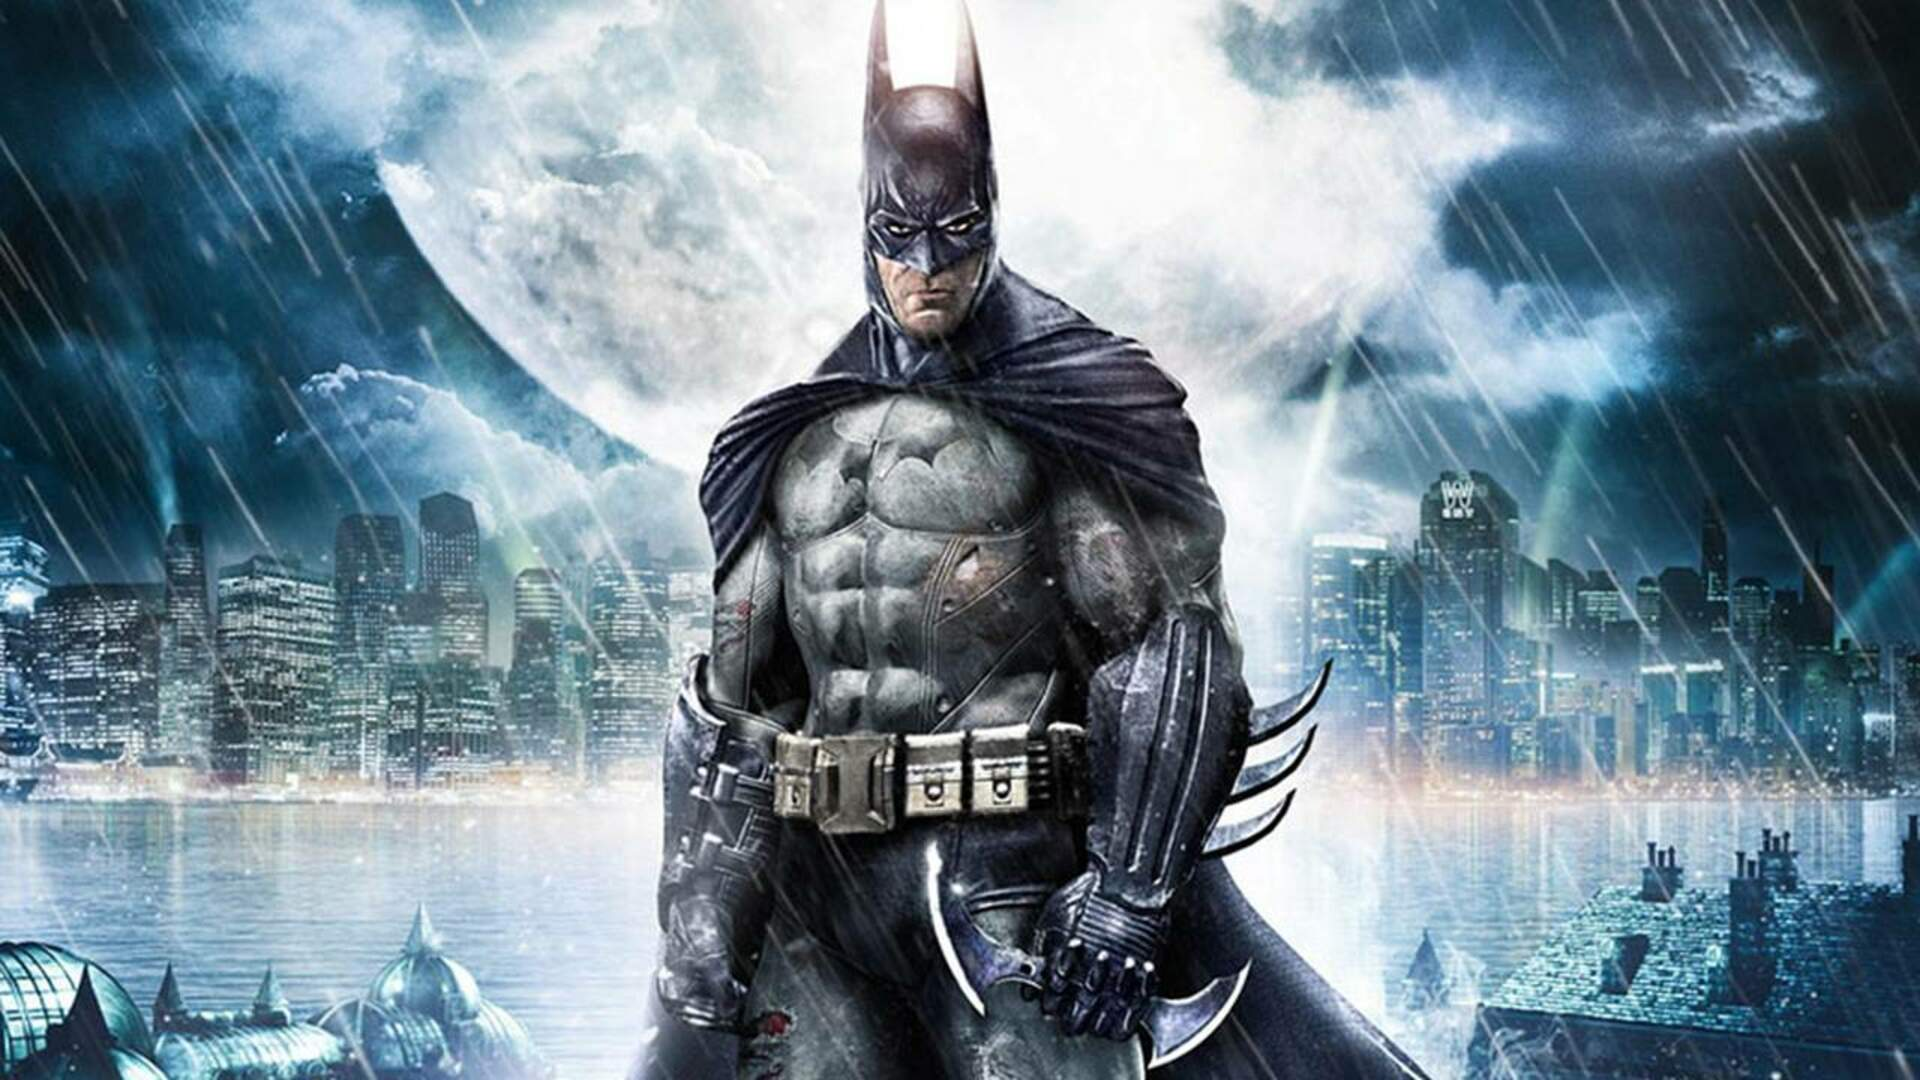 Report: New Batman and Suicide Squad Games in Development For Next-Gen Consoles